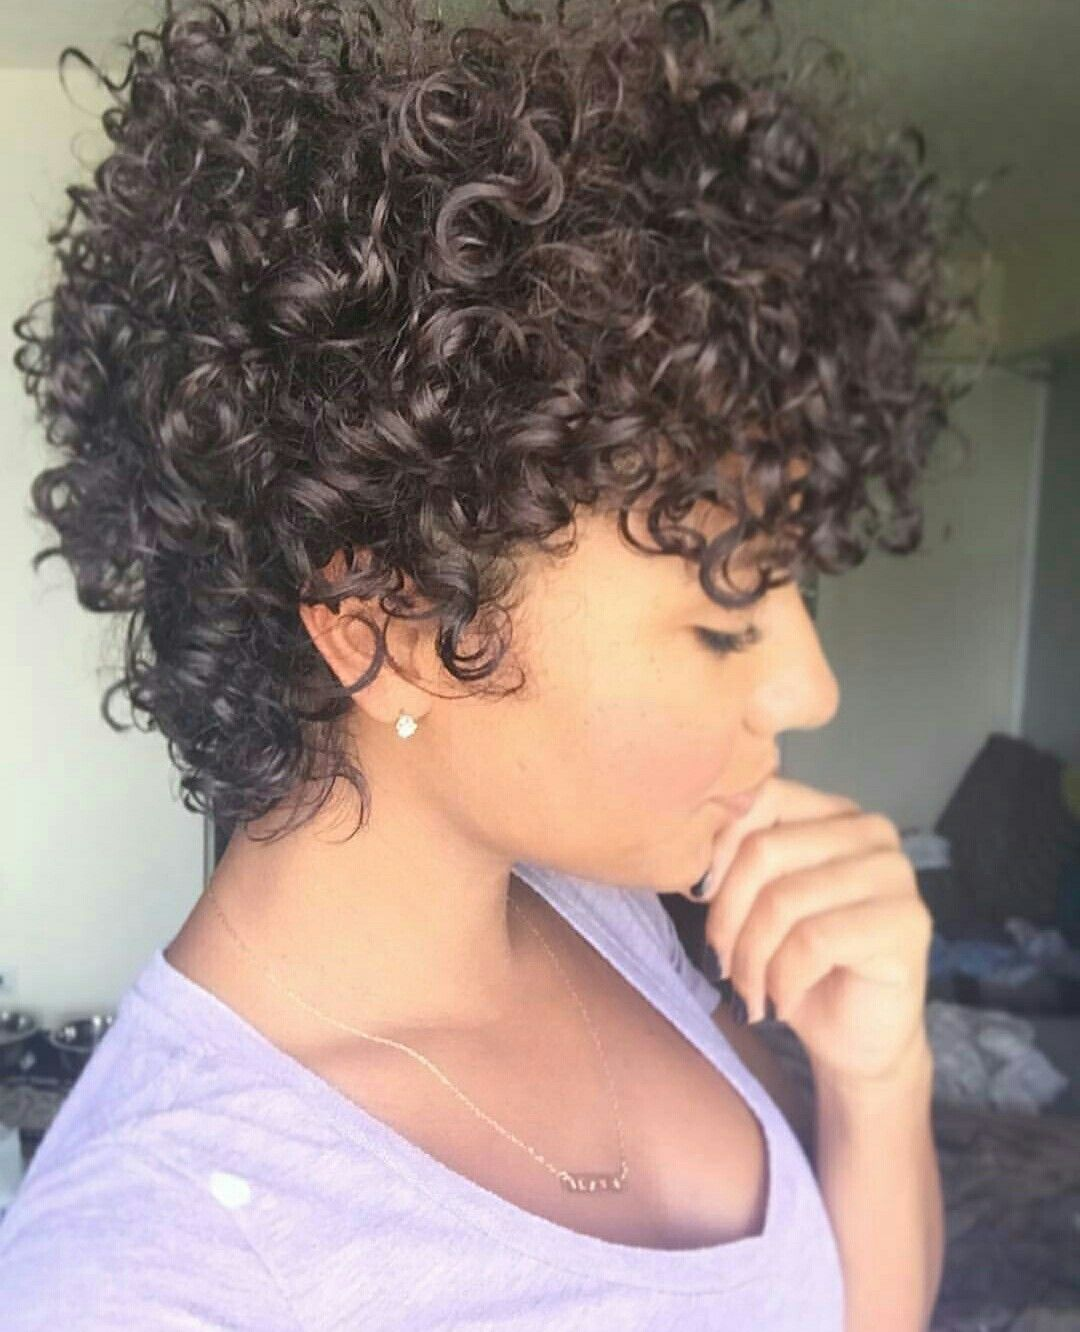 Short Hair Perm Flhairbylo Avedaibw Inspo In 2019 Curly